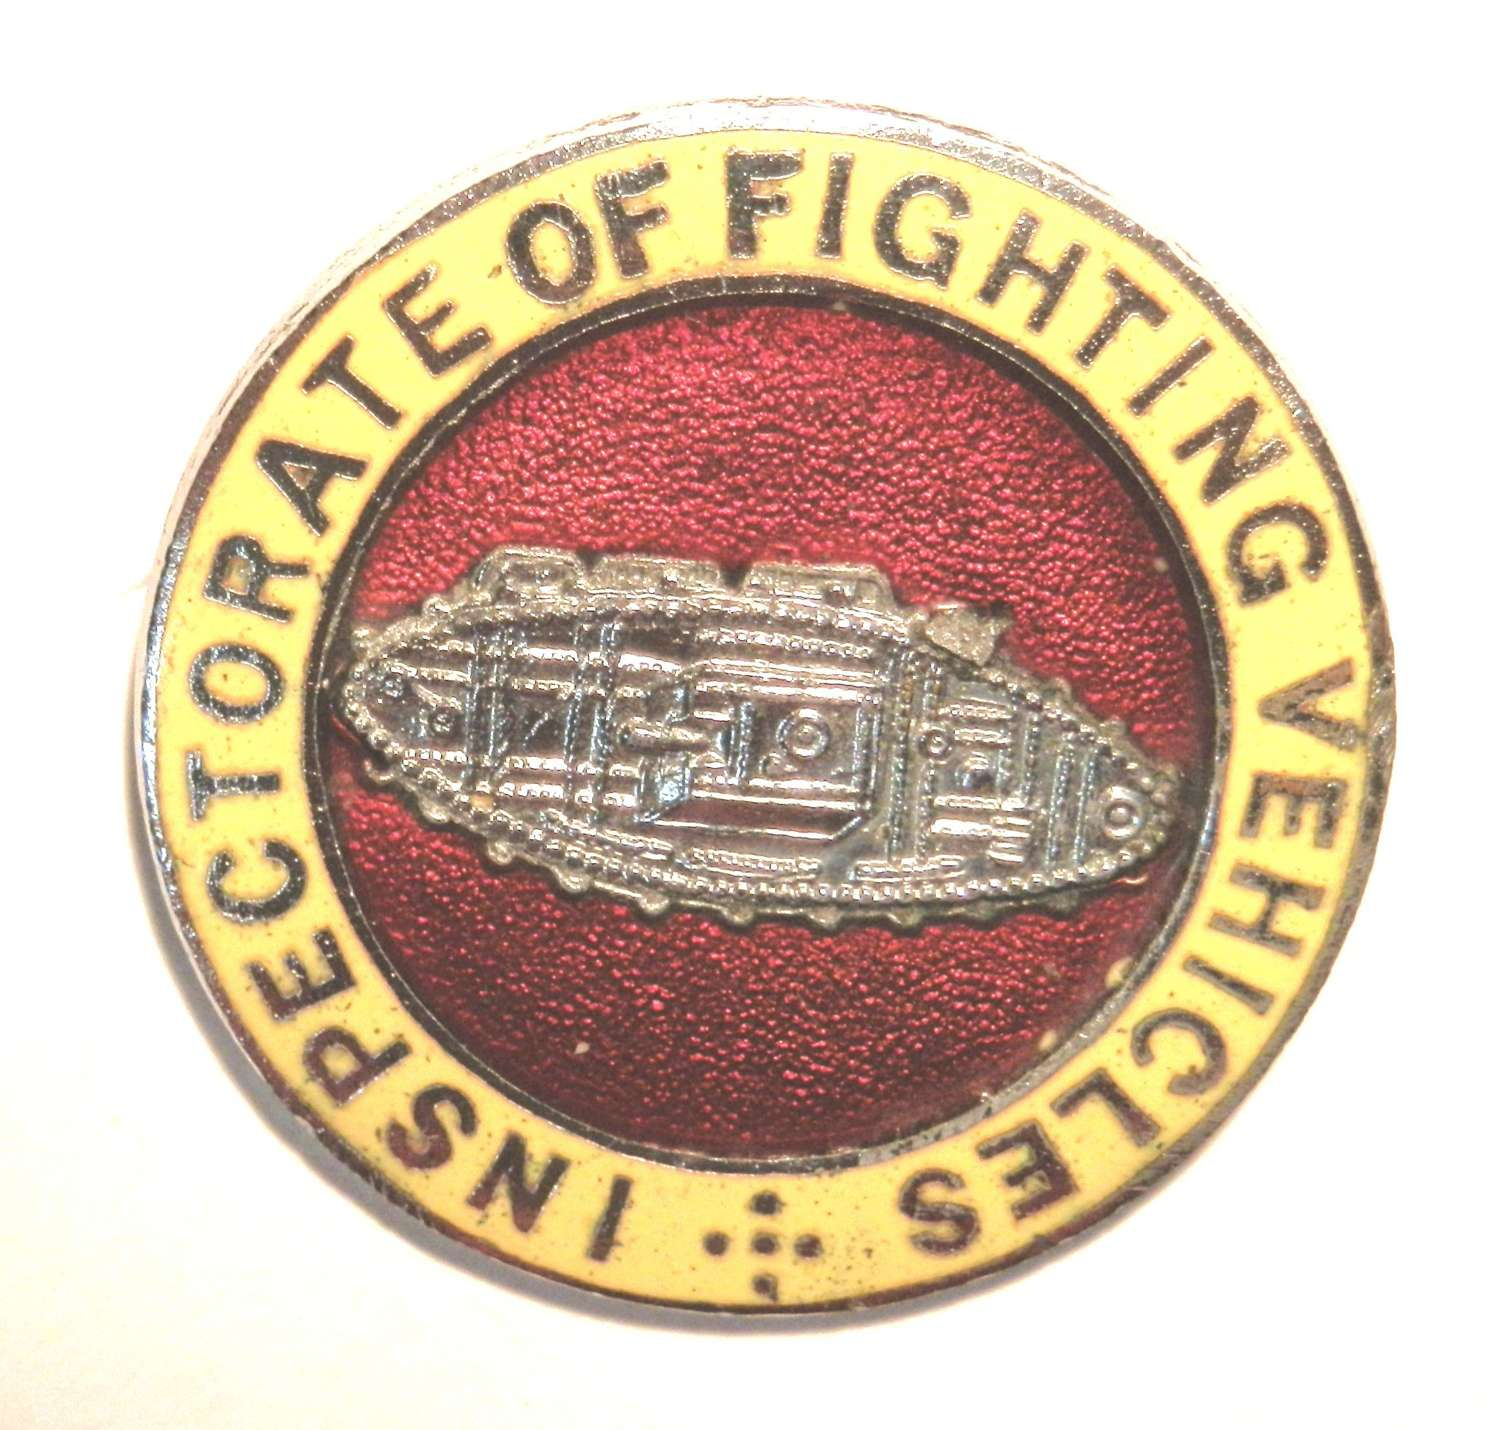 Inspectorate of Fighting Vehicles Lapel Badge